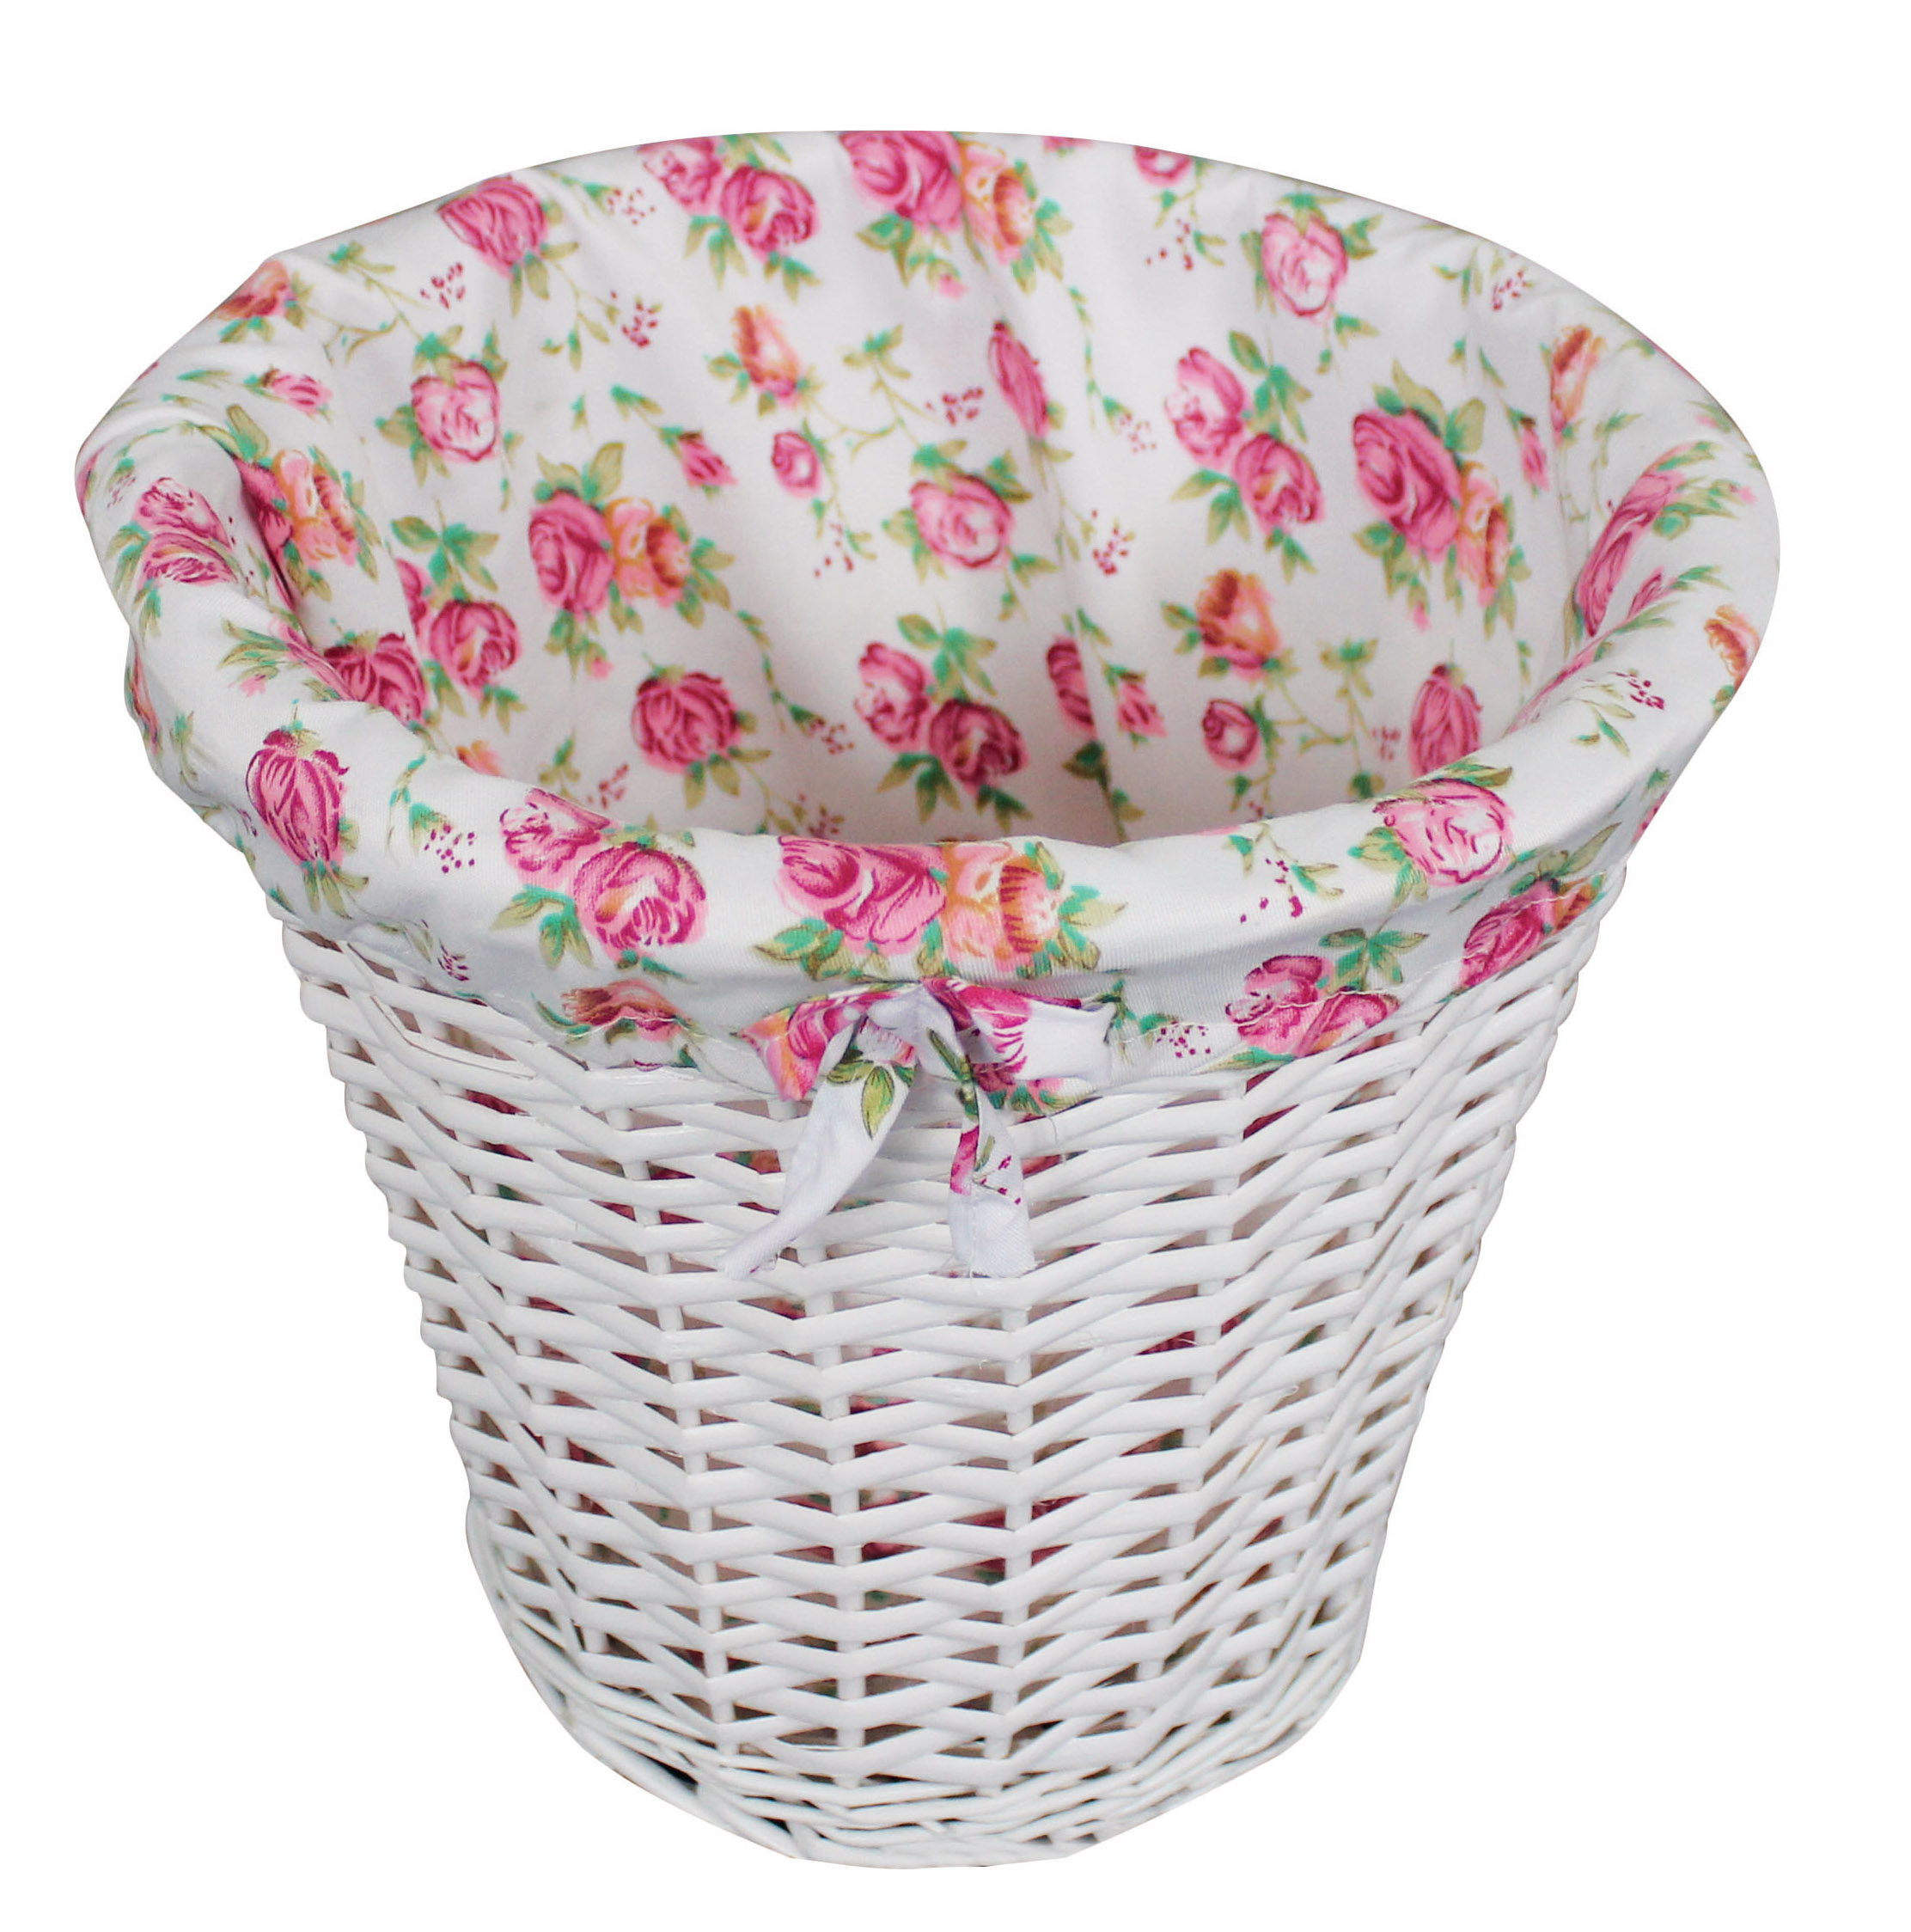 Pastel Laundry wicket basket